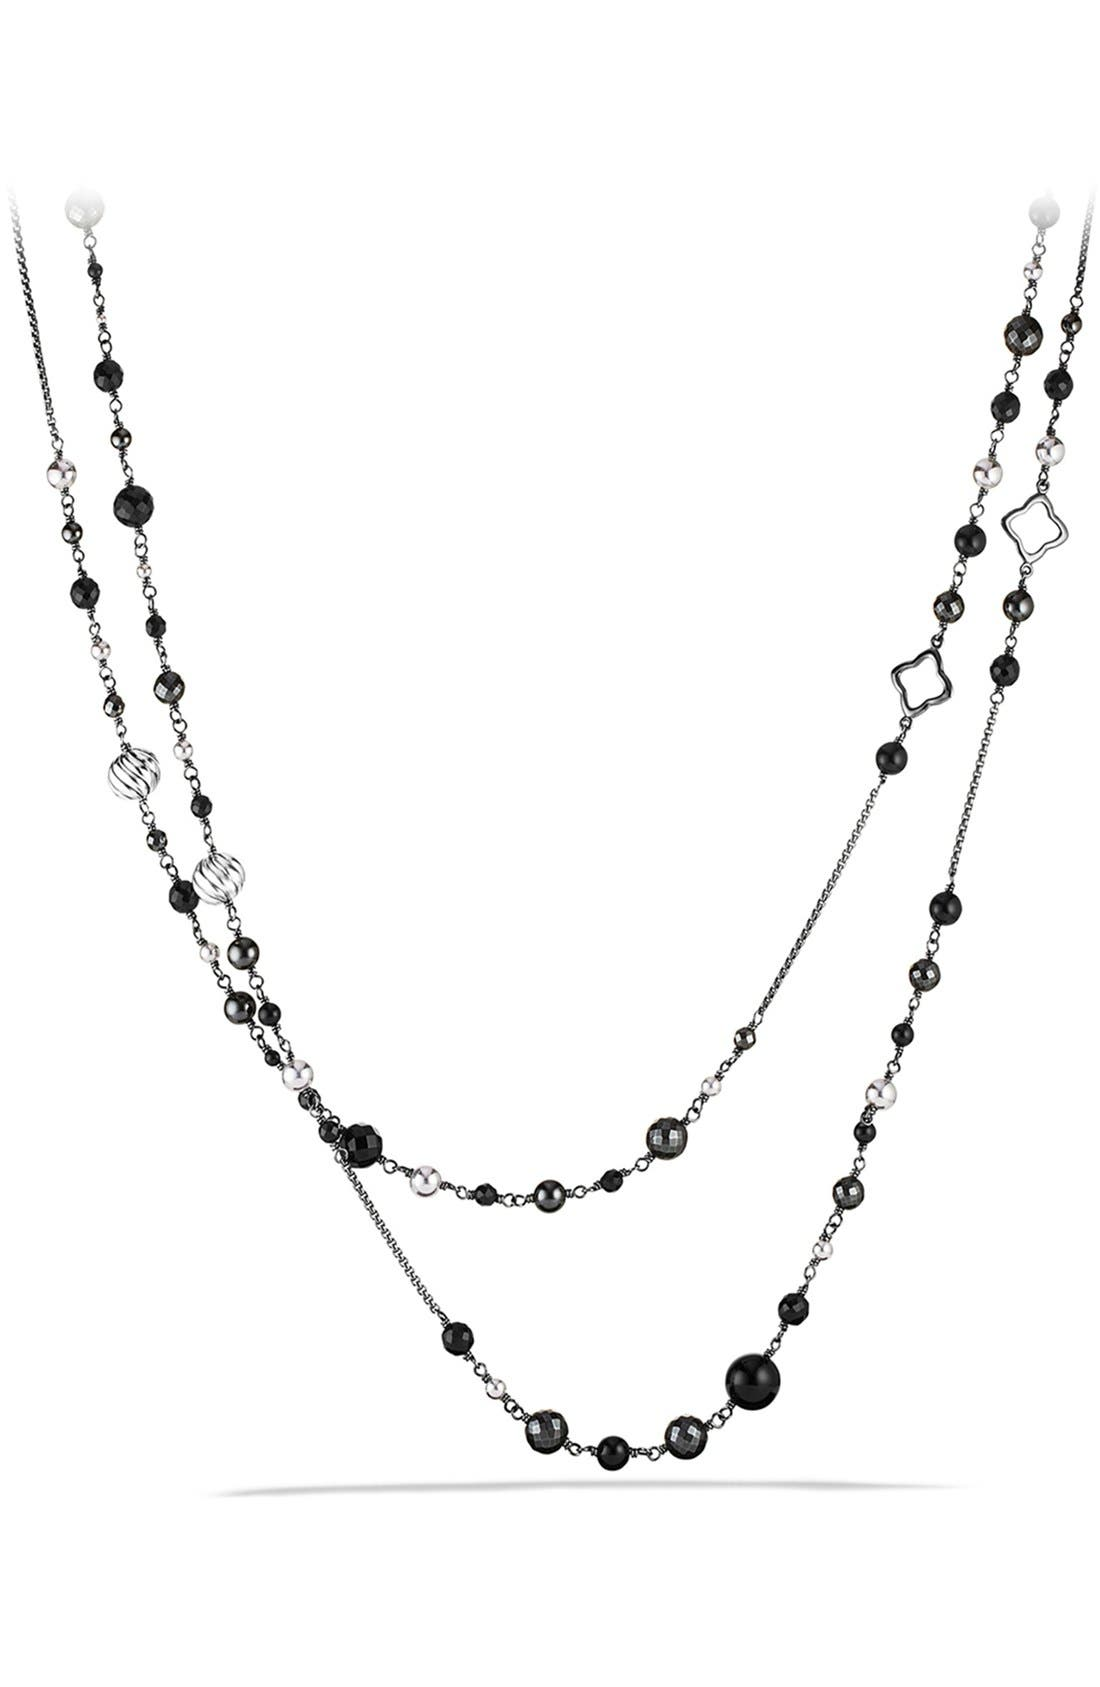 DAVID YURMAN DY Elements Chain Necklace with Black Onyx and Hematine